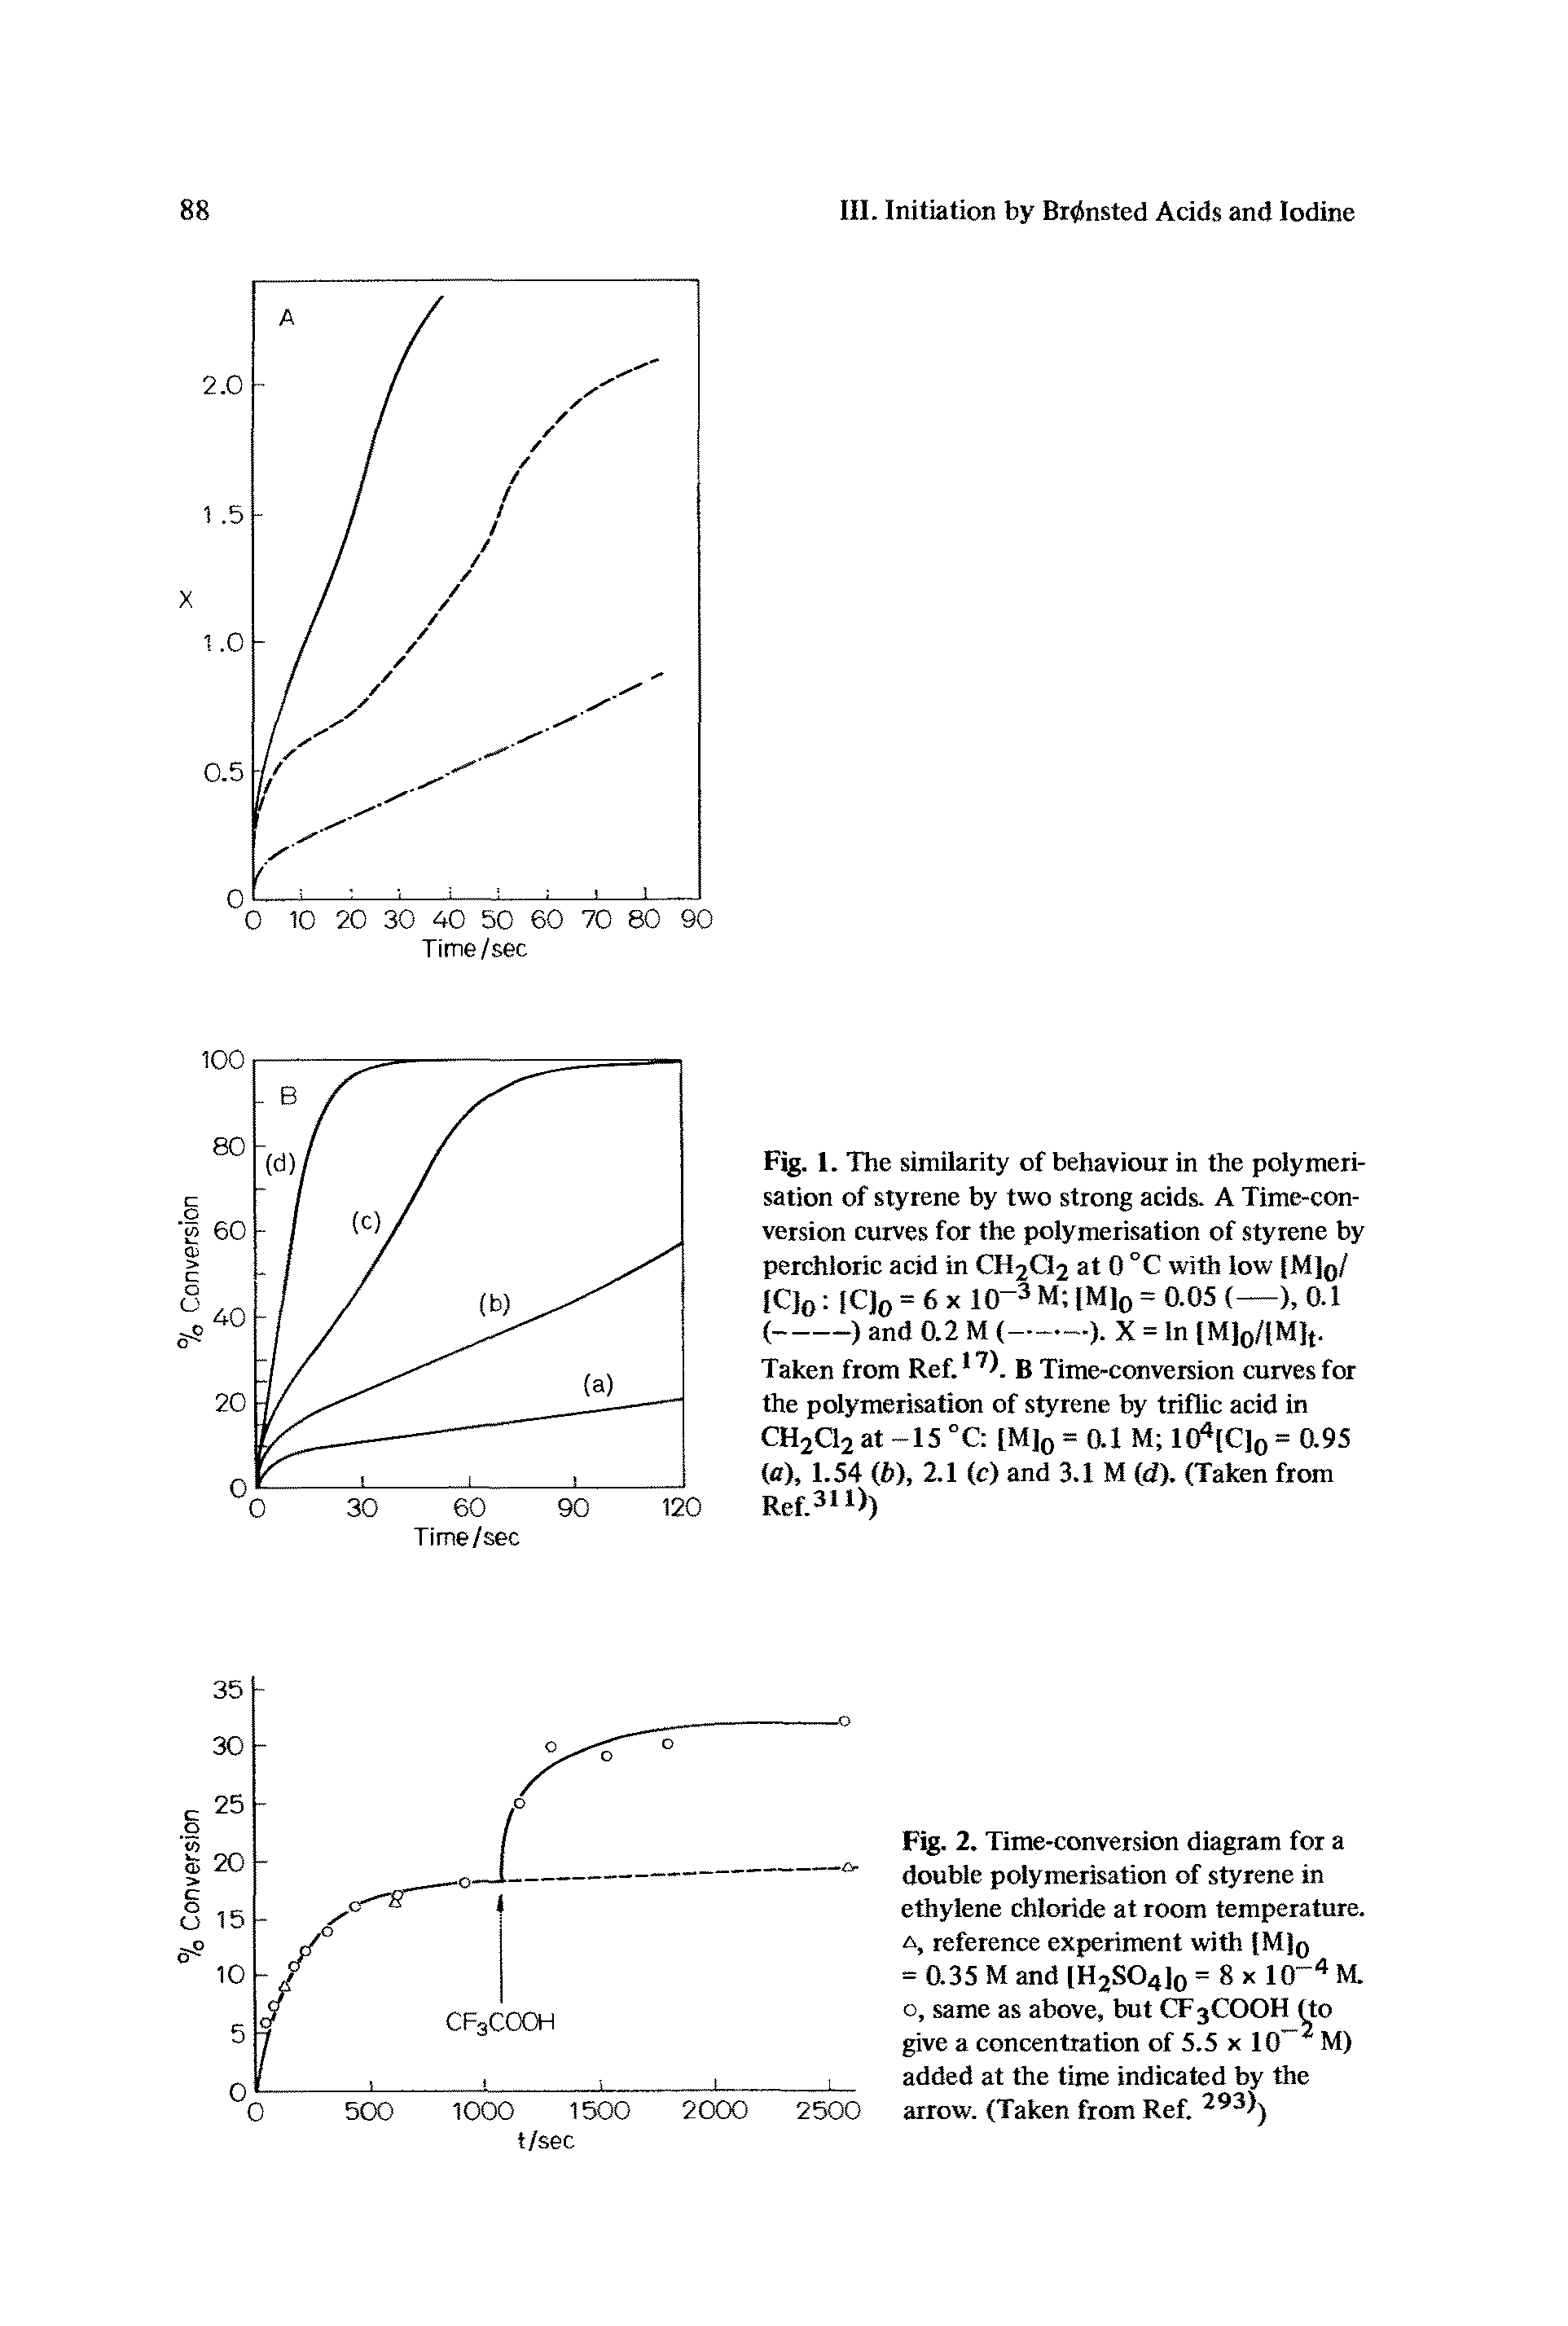 "Fig. 1. The similarity of behaviour in the polymerisation of styrene by two <a href=""/info/acids_strong"">strong acids</a>. A Time-conversion curves for the polymerisation of styrene by <a href=""/info/perchloric_acid"">perchloric acid</a> in CH2Q2 at 0 °C with low [M]q/"